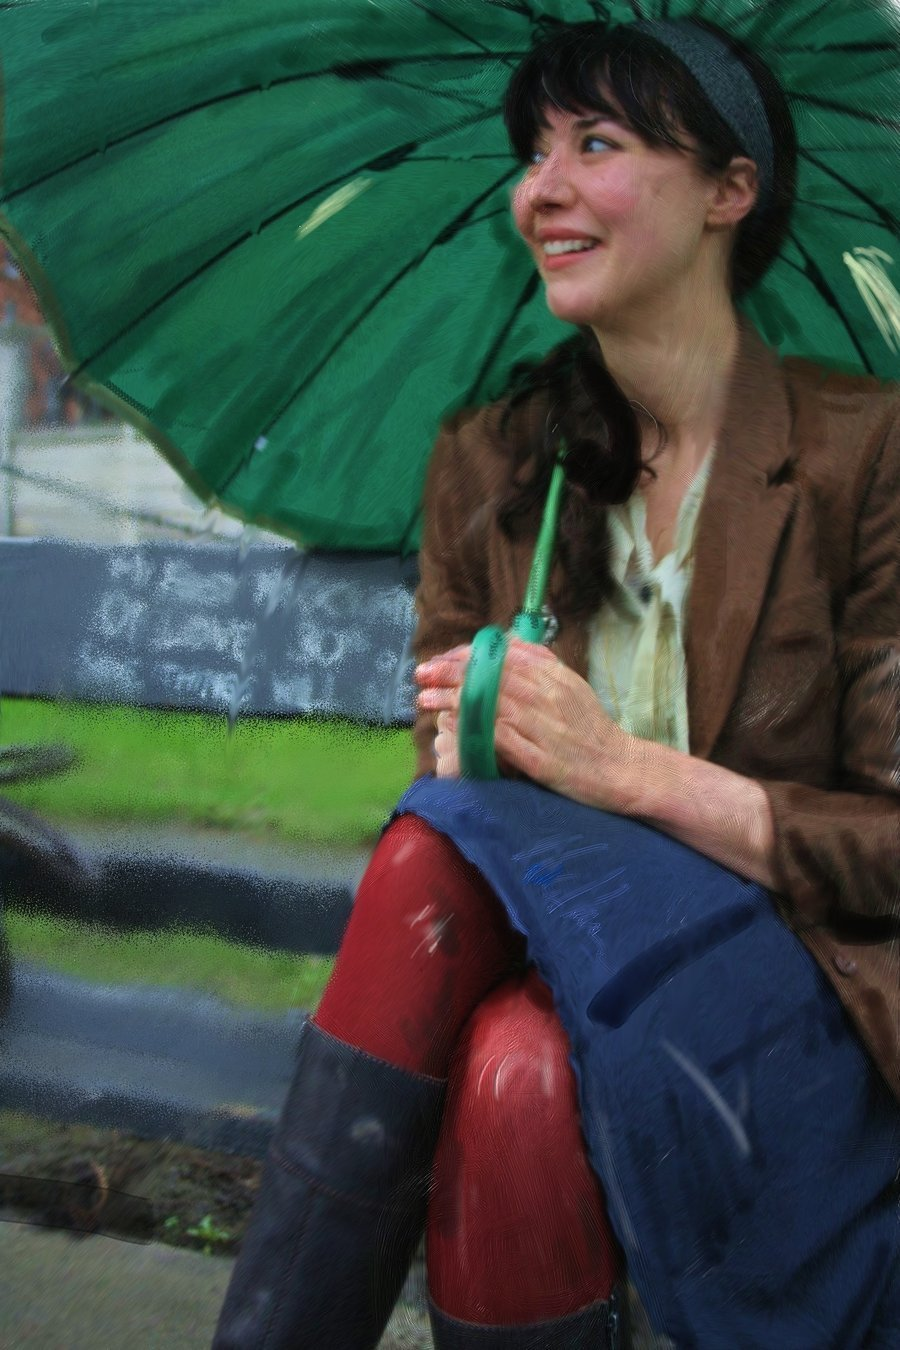 White Blue Wallpaper Hd Lisa Hannigan Images Rainy Day Hd Wallpaper And Background